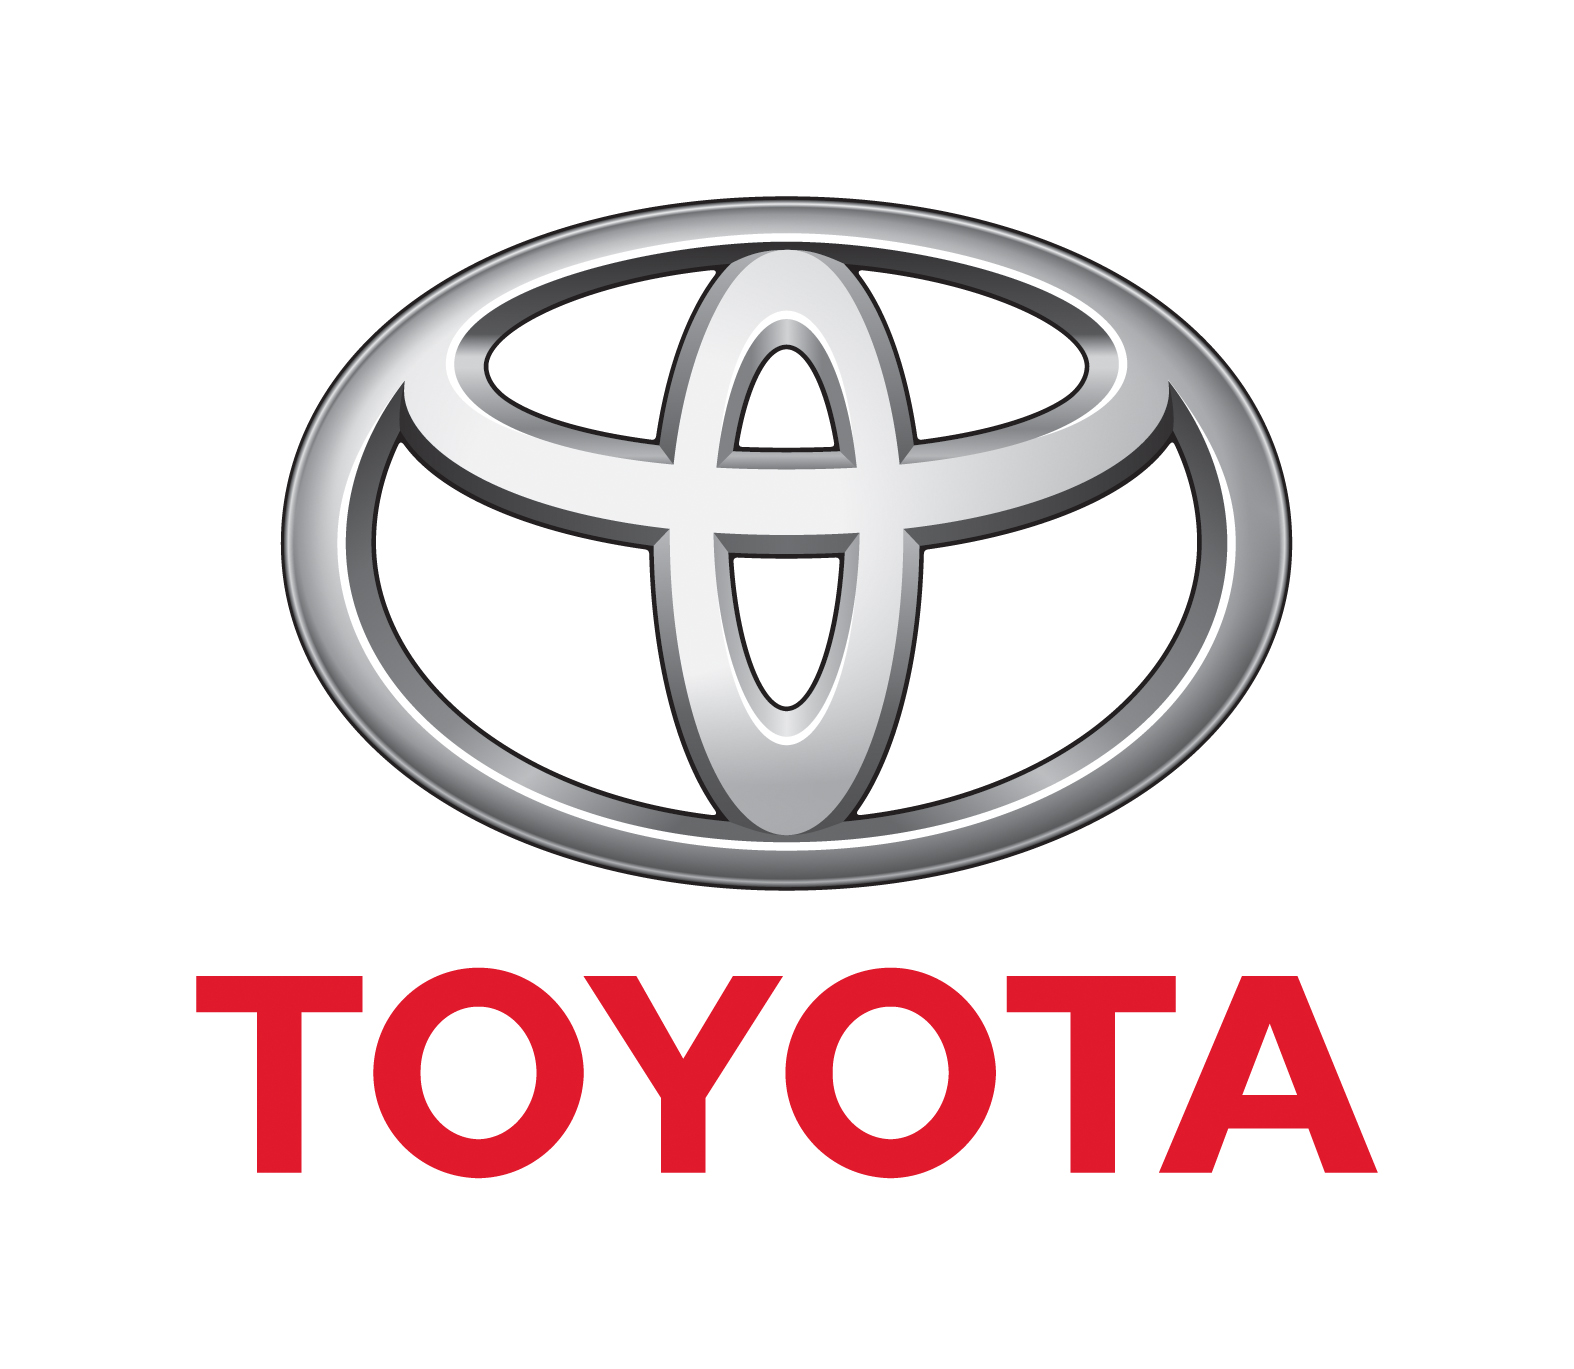 2013 Venza additionally When Is Toyota 2016 Shutdown moreover Toyota Motor 7a moreover Album display further Toyotas Growing North American Operations Prompt Partnership With Isn 2. on toyota motor manufacturing kentucky logo